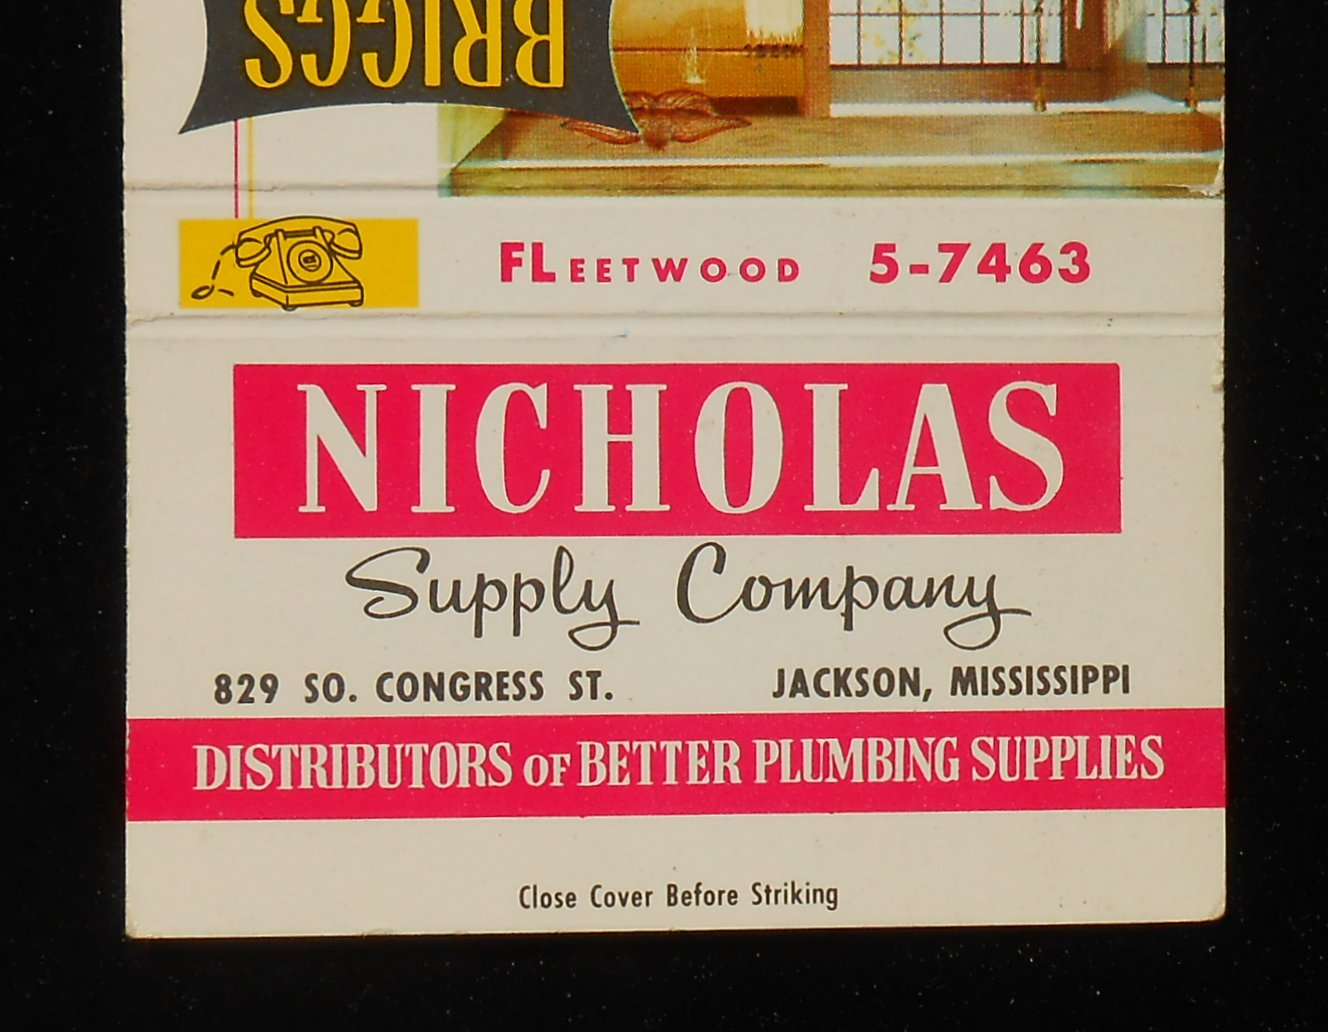 chair covers jackson ms graco high replacement harmony 1950s billboard matchbook briggs bathroom toilet nicholas